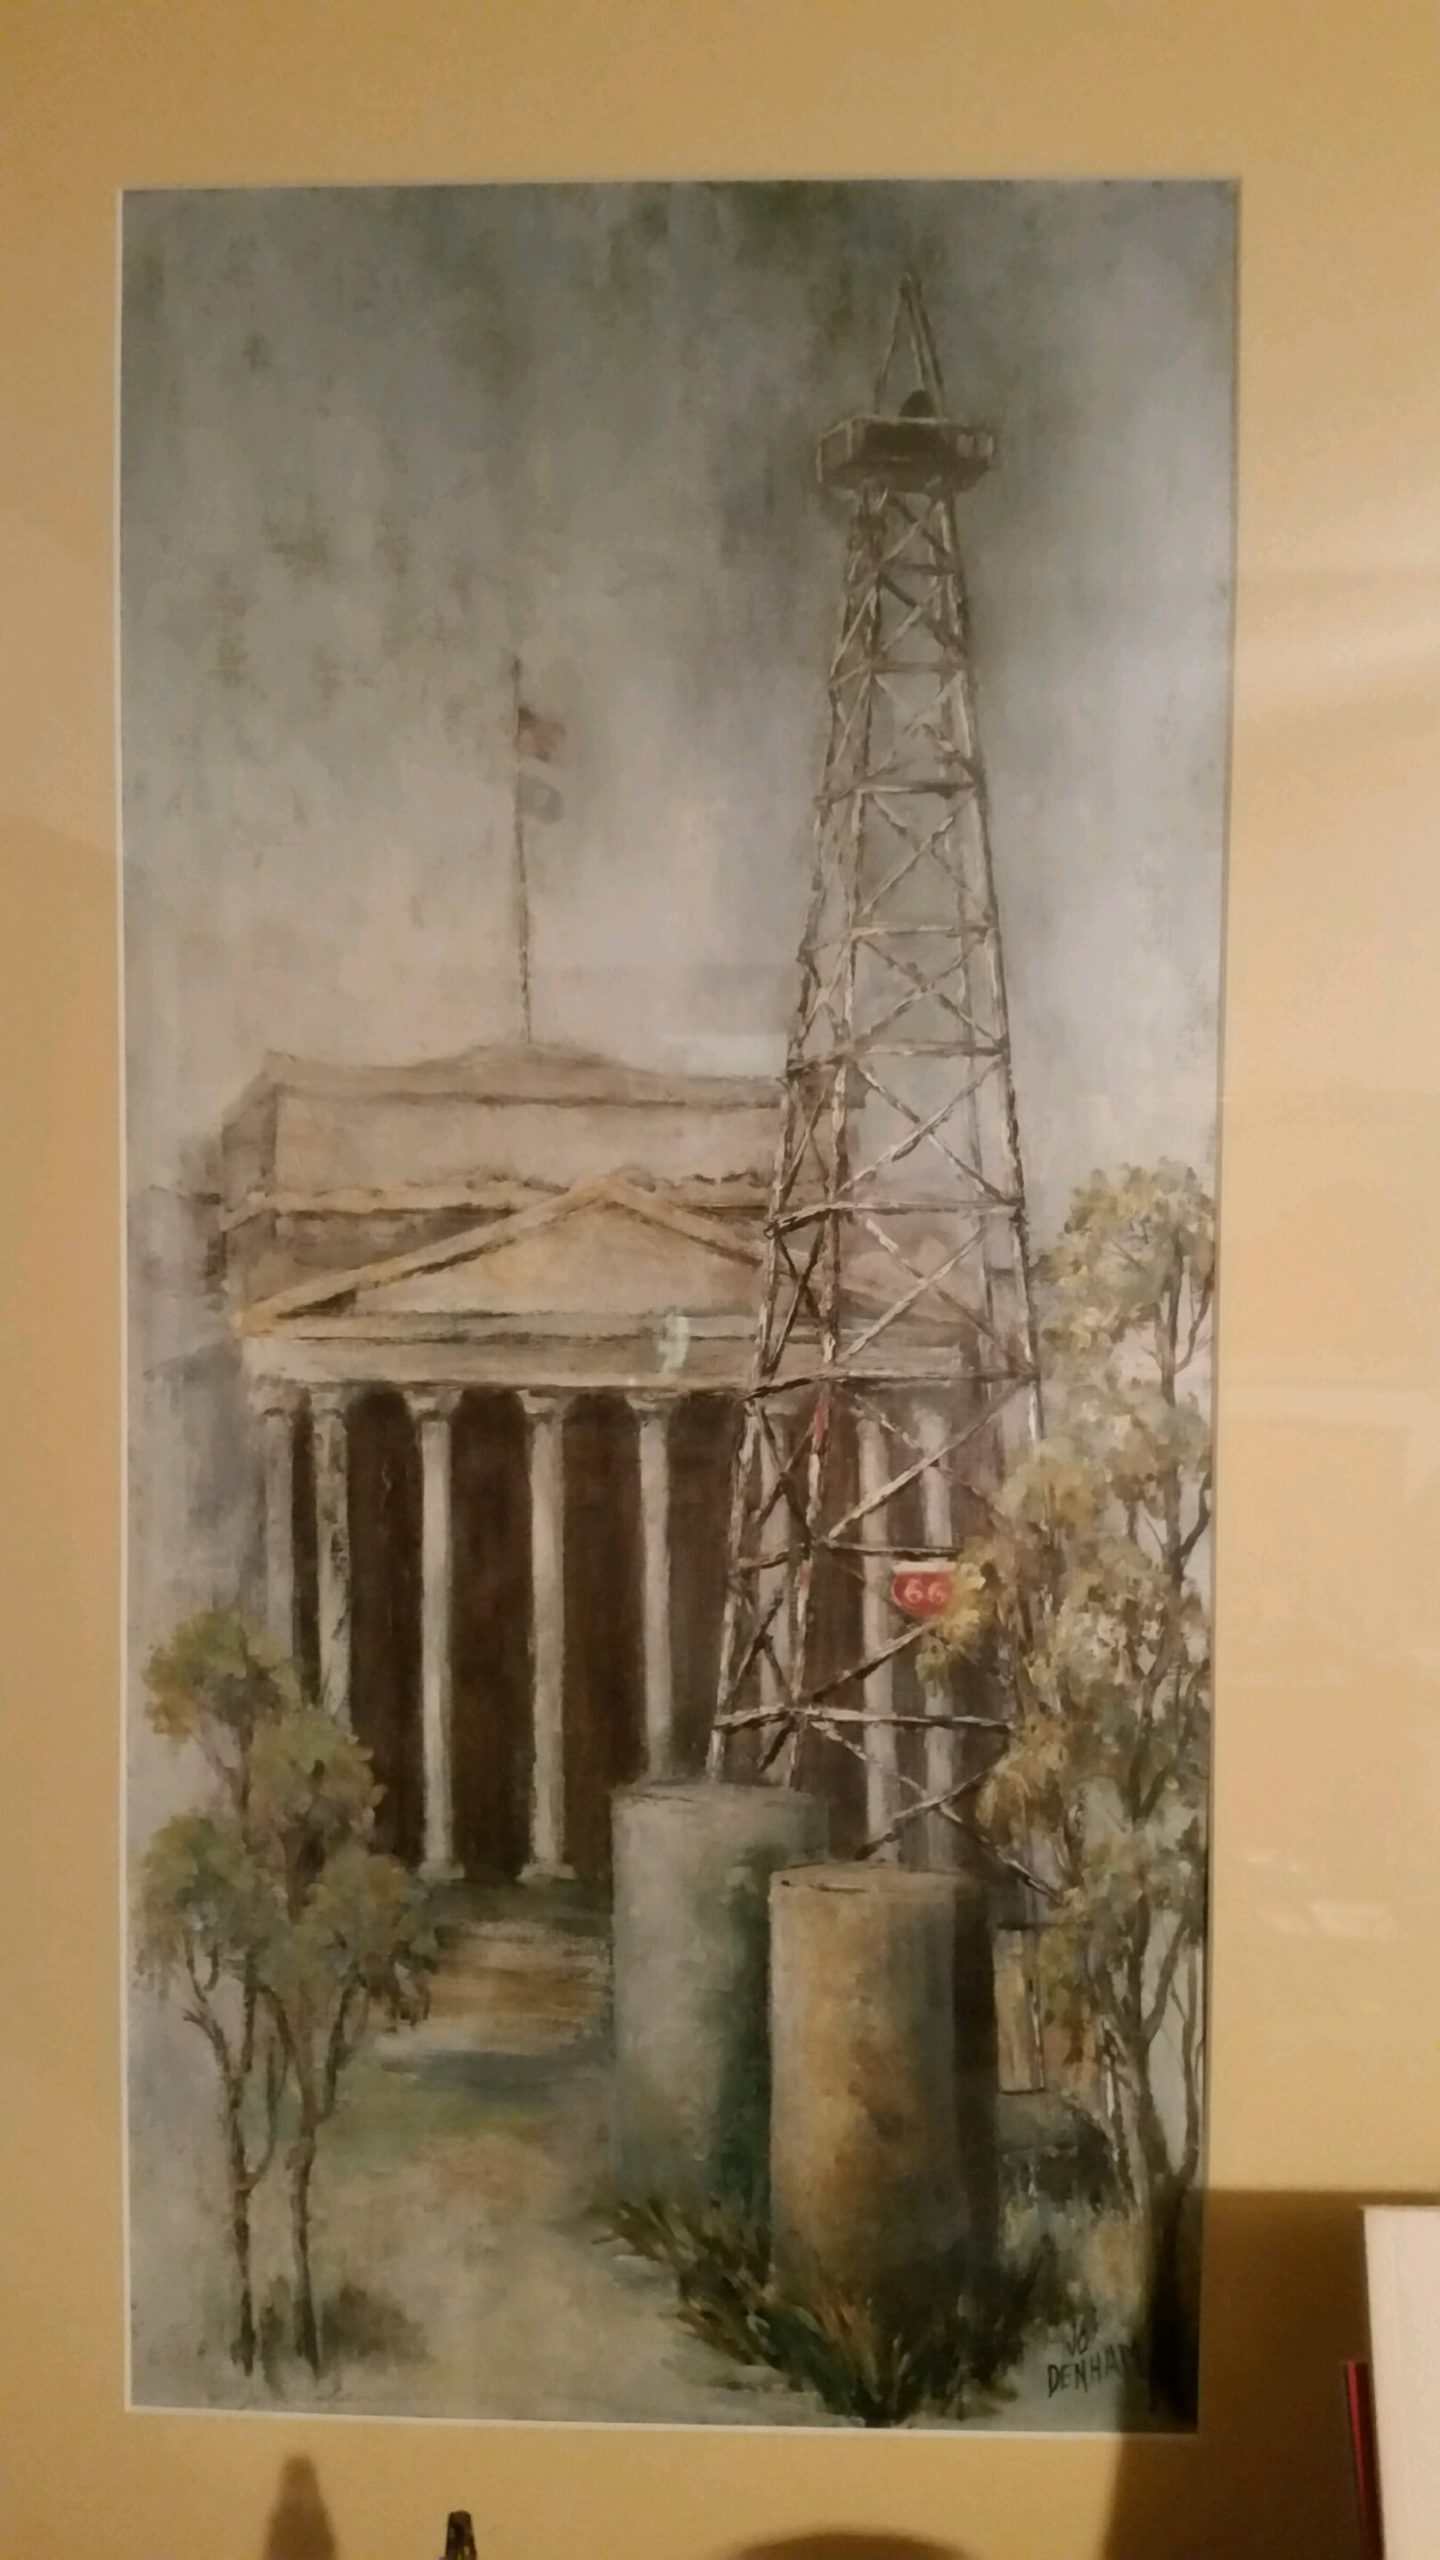 Oil Well at Oklahoma State Capital